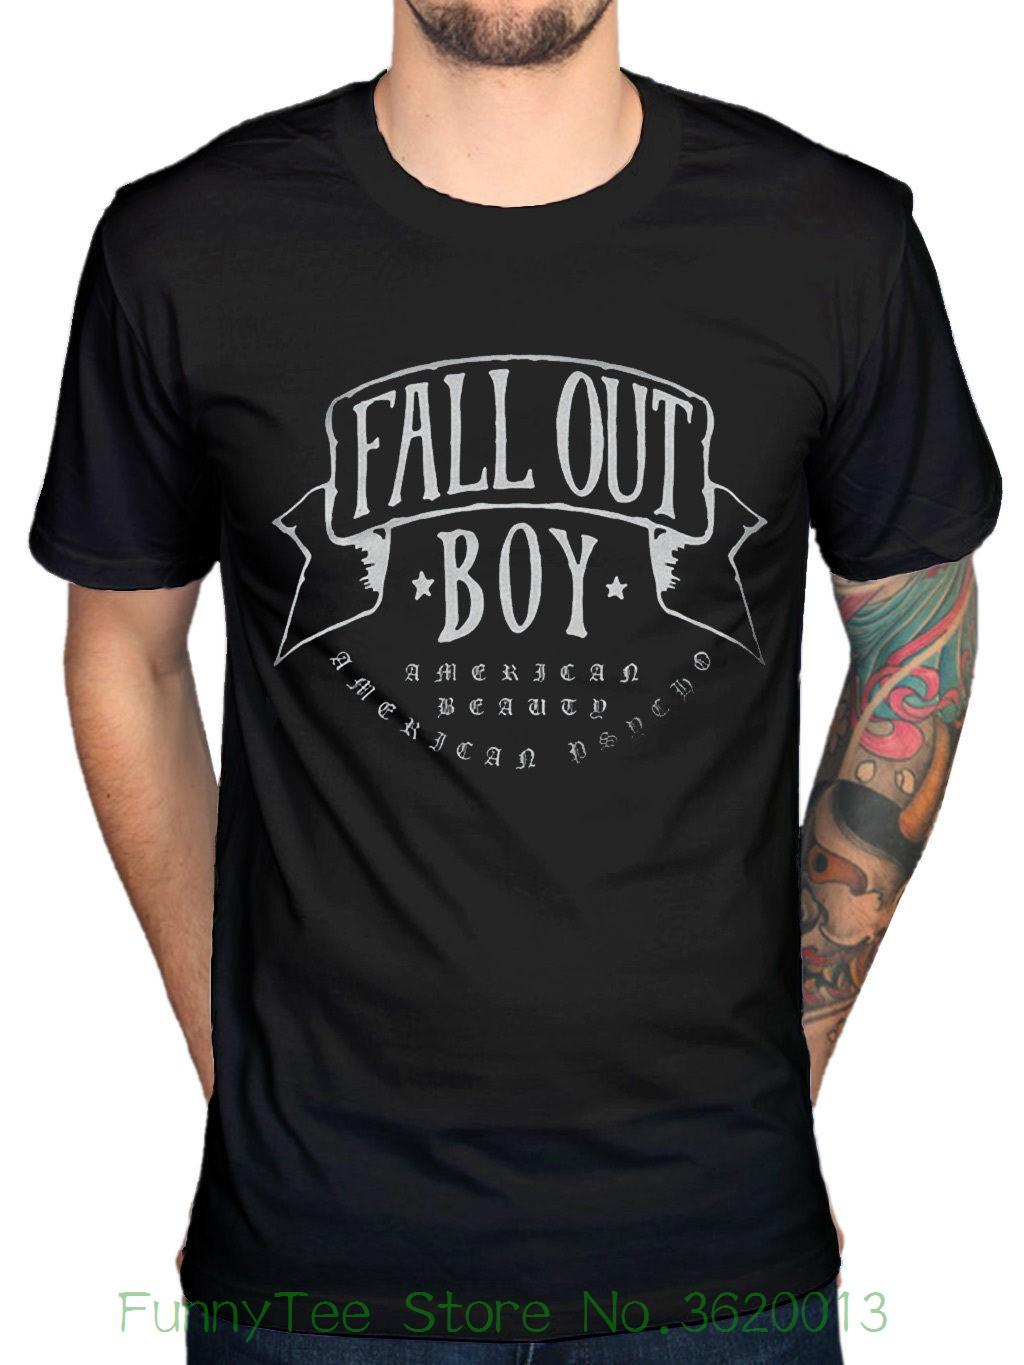 9a1c27f50 Official Fall Out Boy American Beauty T-shirt Rock Band Centuries  Merchandise